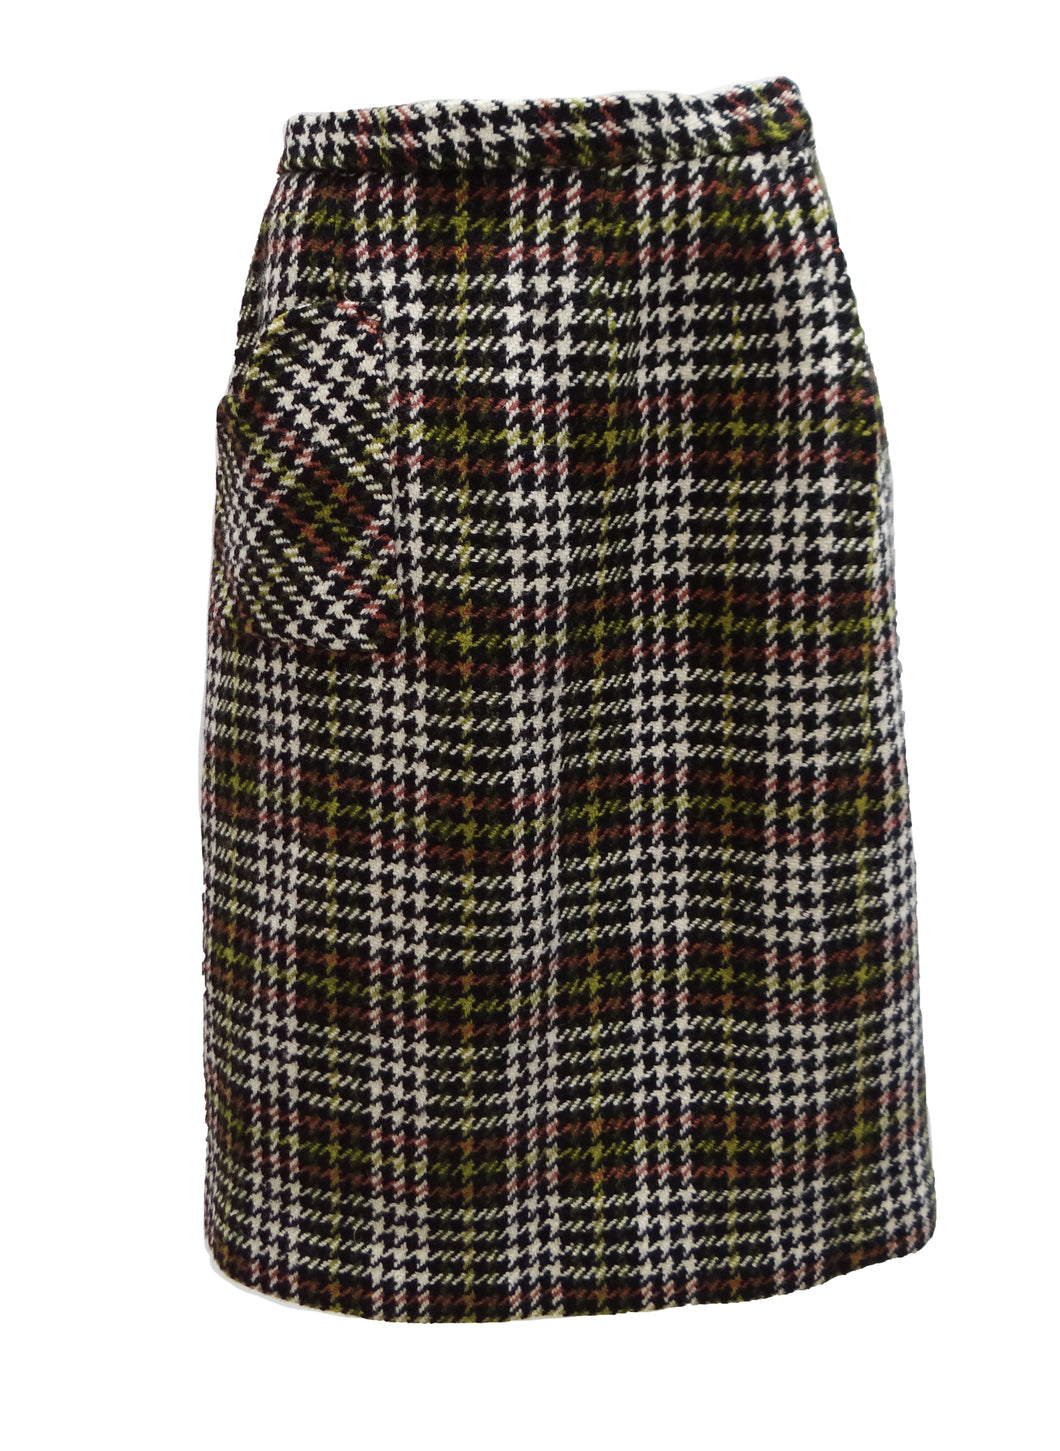 Vintage Tweed Skirt with Heart-Shaped pocket, UK10